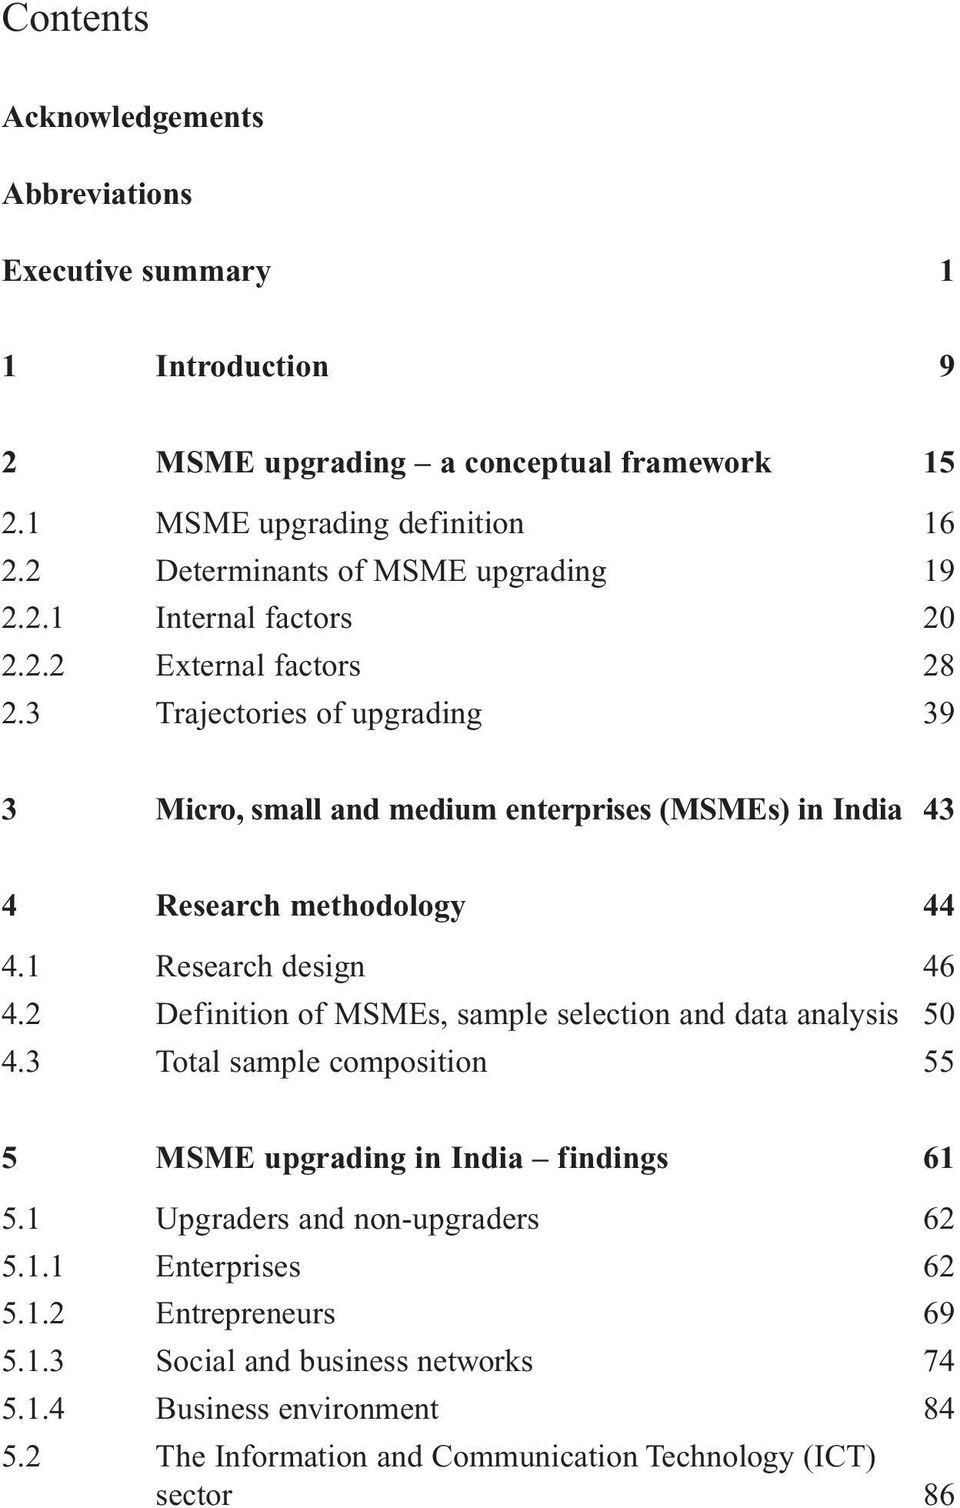 3 Trajectories of upgrading 39 3 Micro, small and medium enterprises (MSMEs) in India 43 4 Research methodology 44 4.1 Research design 46 4.